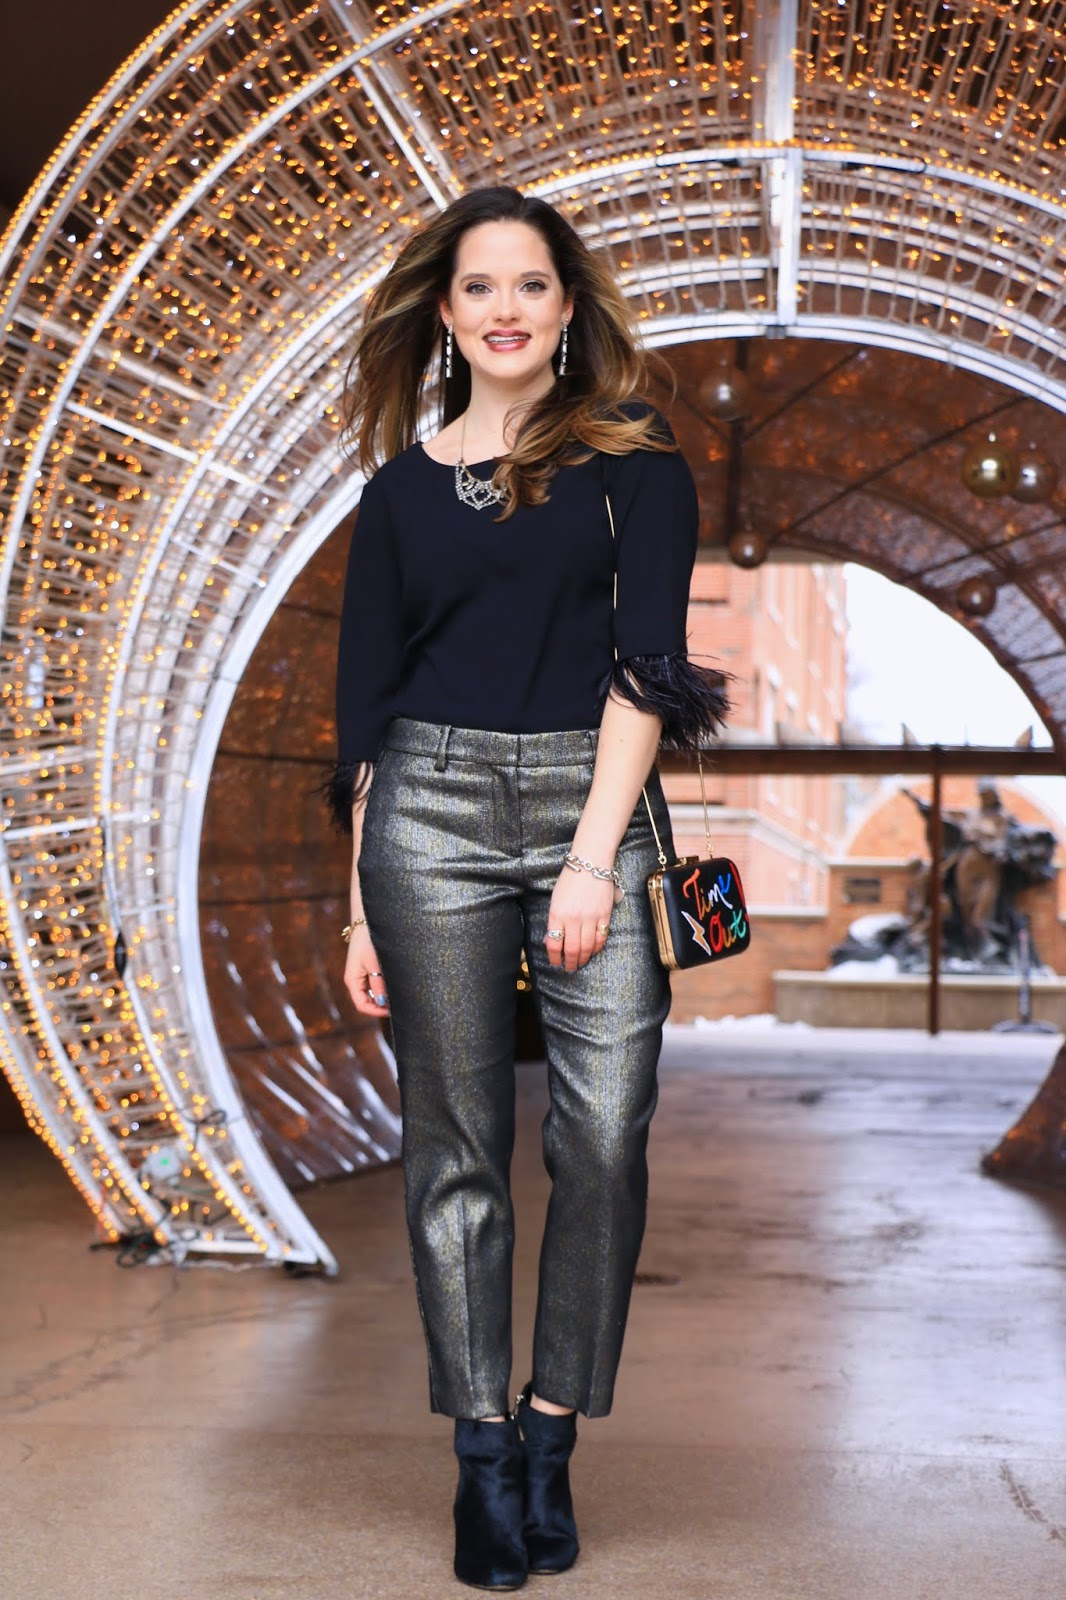 Nyc fashion blogger Kathleen Harper's New Year's Eve outfit ideas